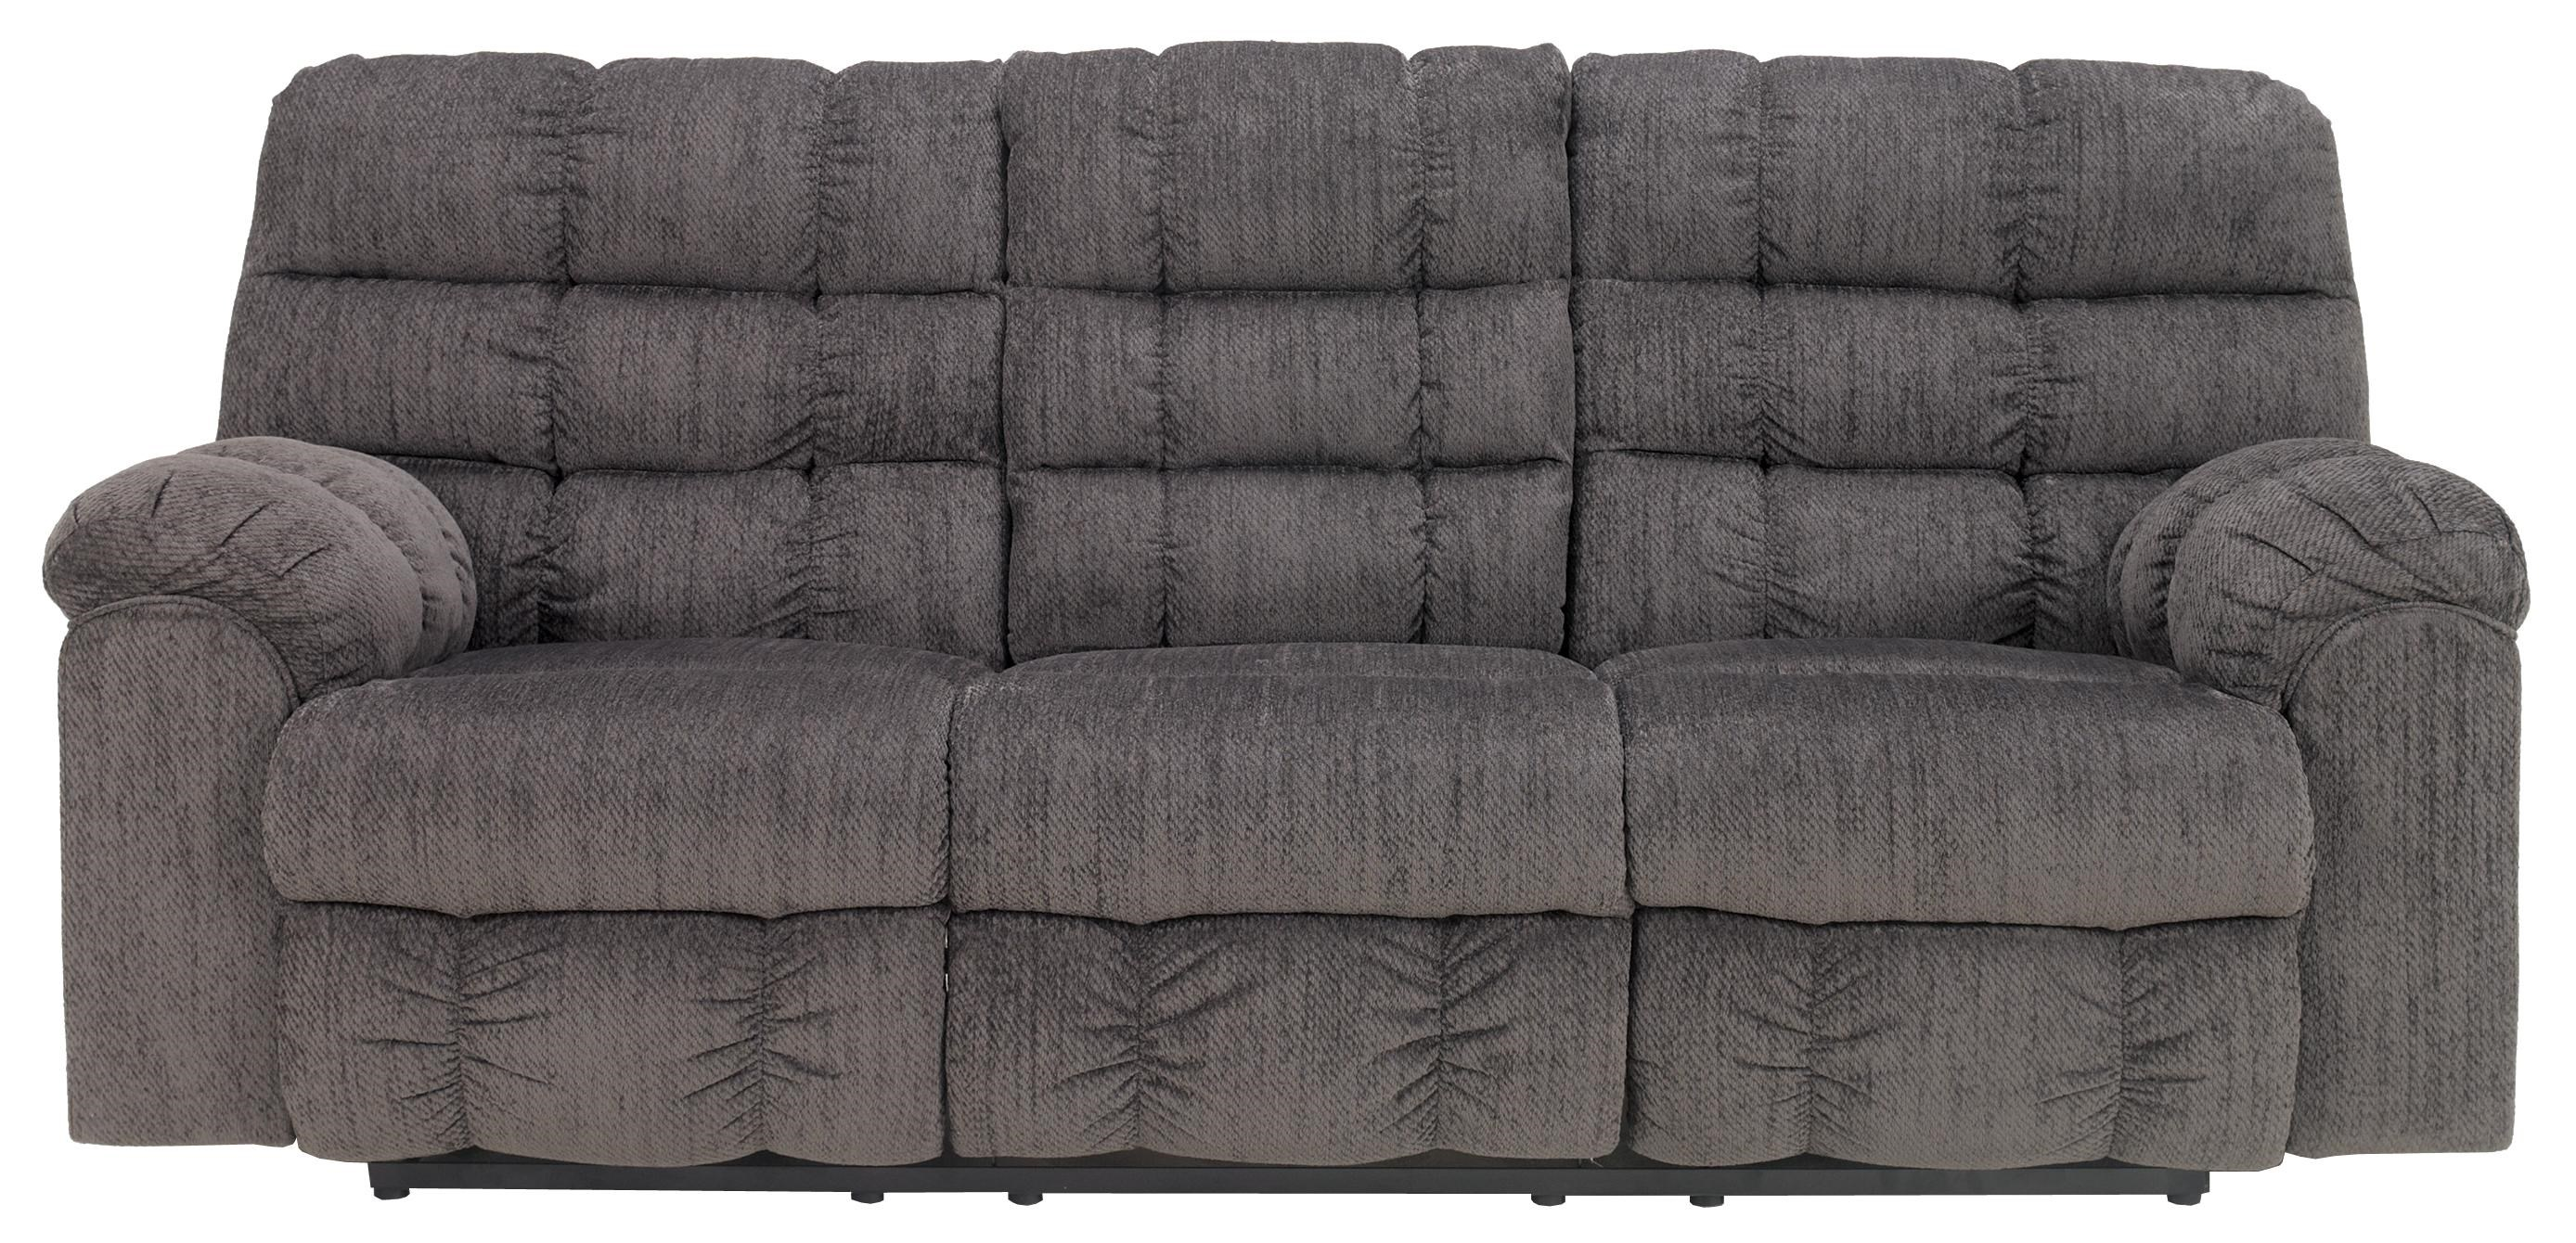 Signature Design By Ashley Acieona   Slate Reclining Sofa With Drop Down  Table And Cup Holders